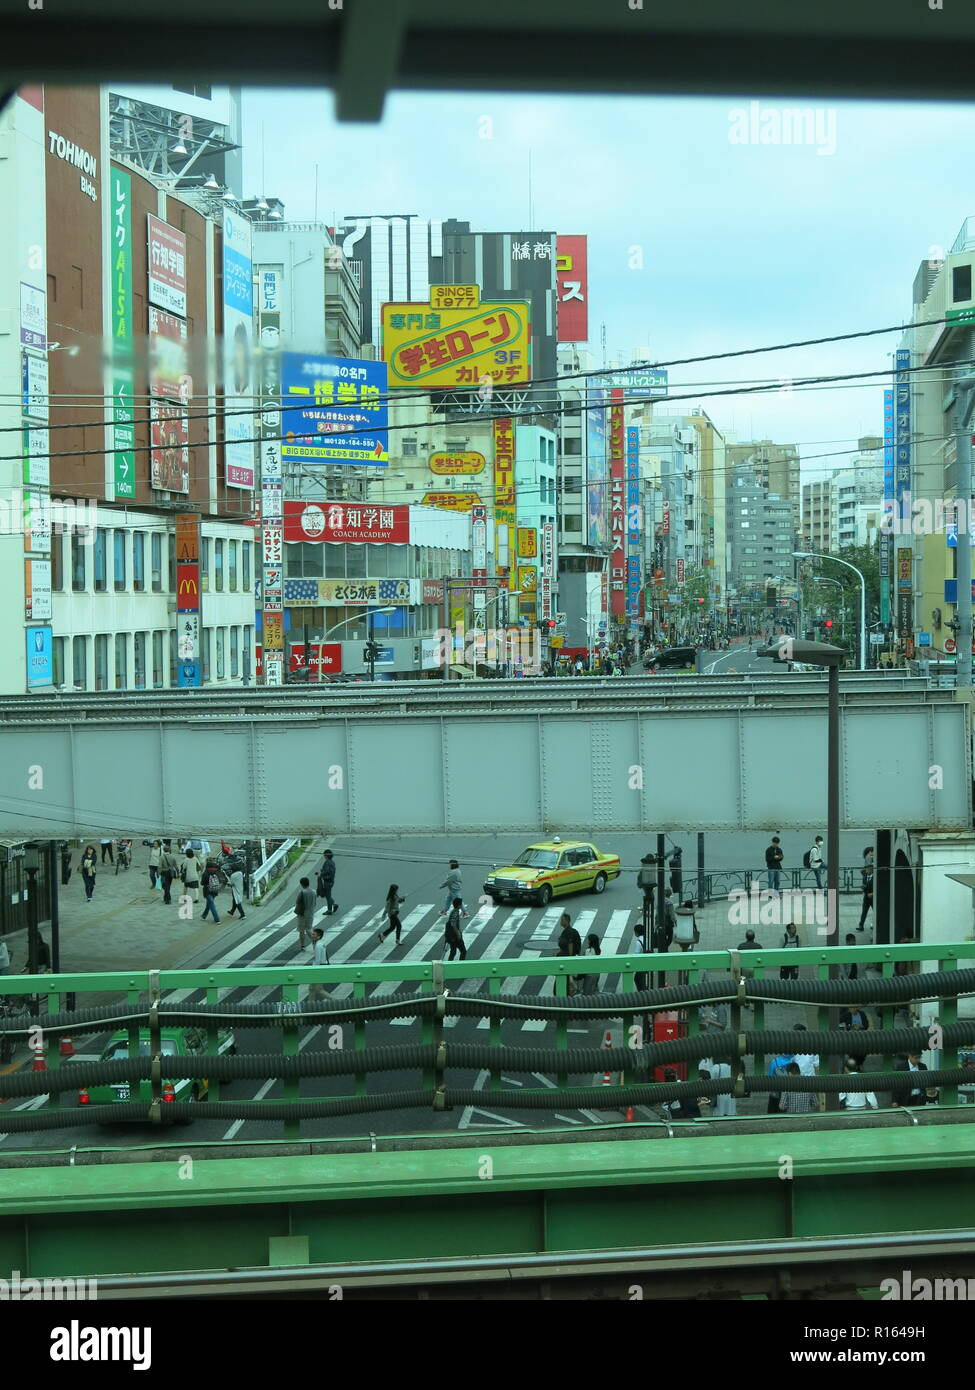 A view of central Tokyo from the window of a train on the Yamanote Line (JR East), Tokyo to Meguro: high density of buildings and railtracks; Japan - Stock Image